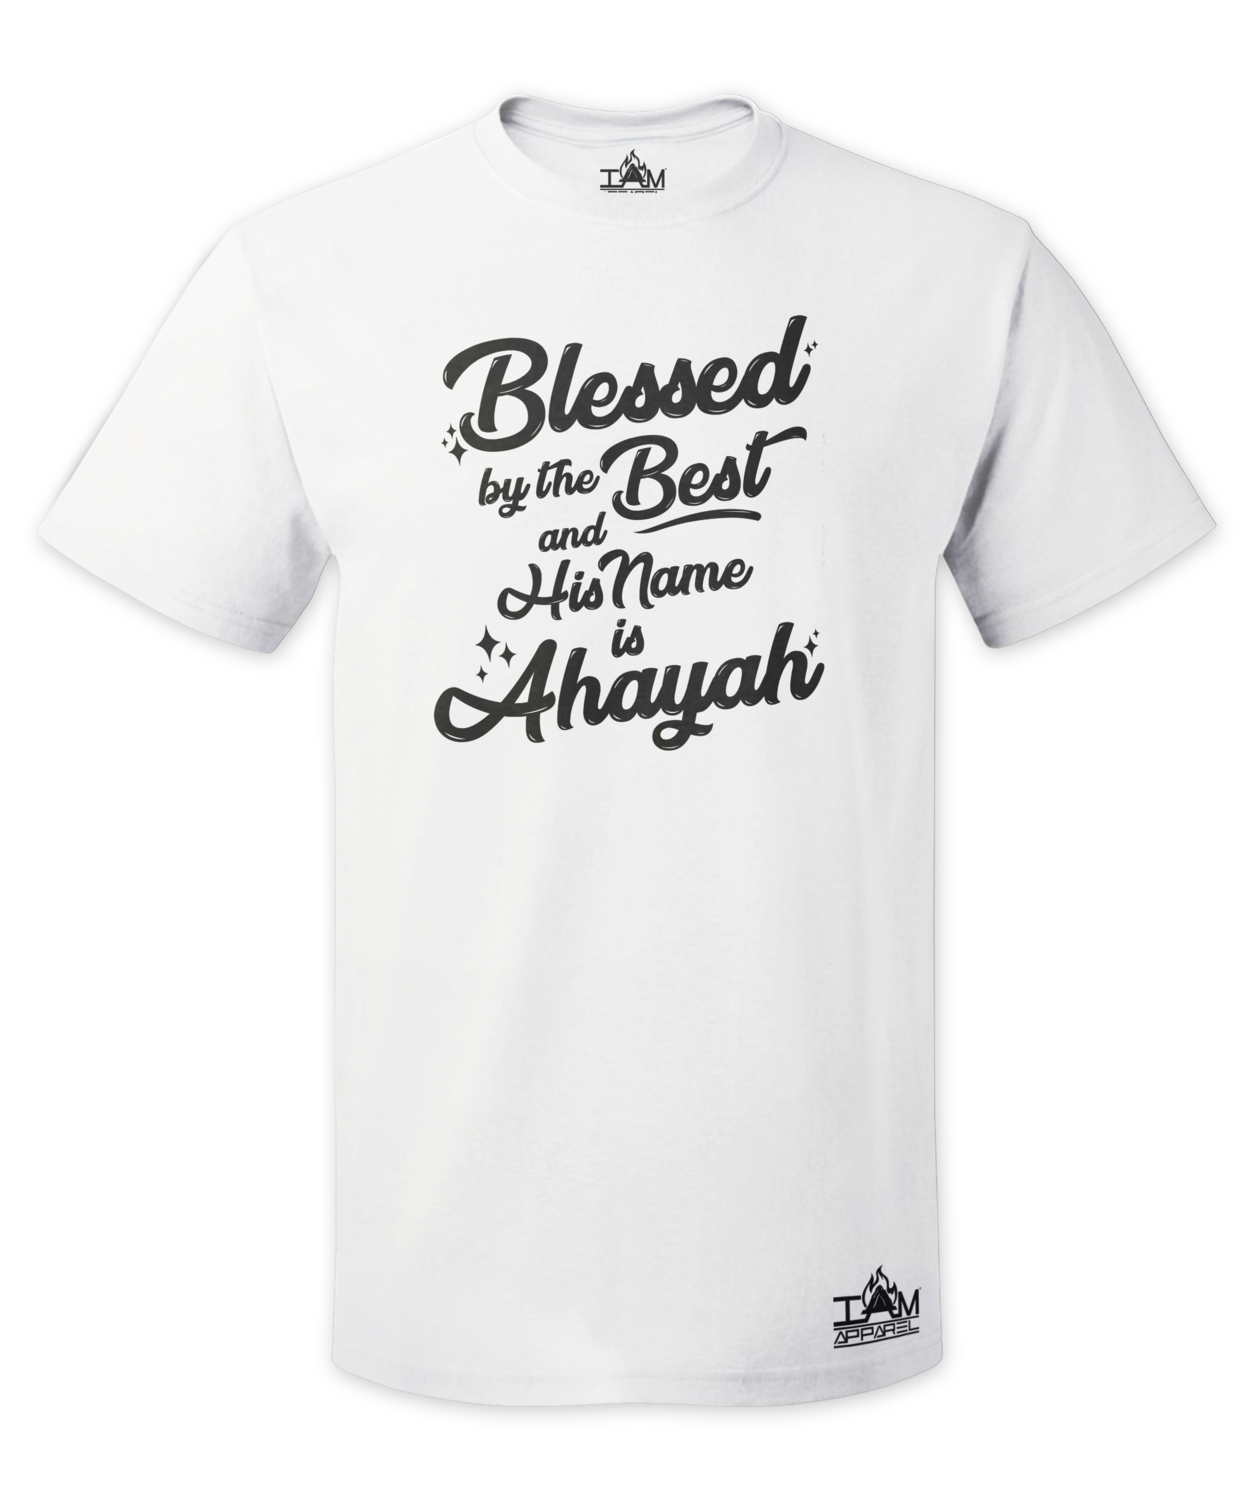 Men's Blessed by the best Short Sleeved T-shirt